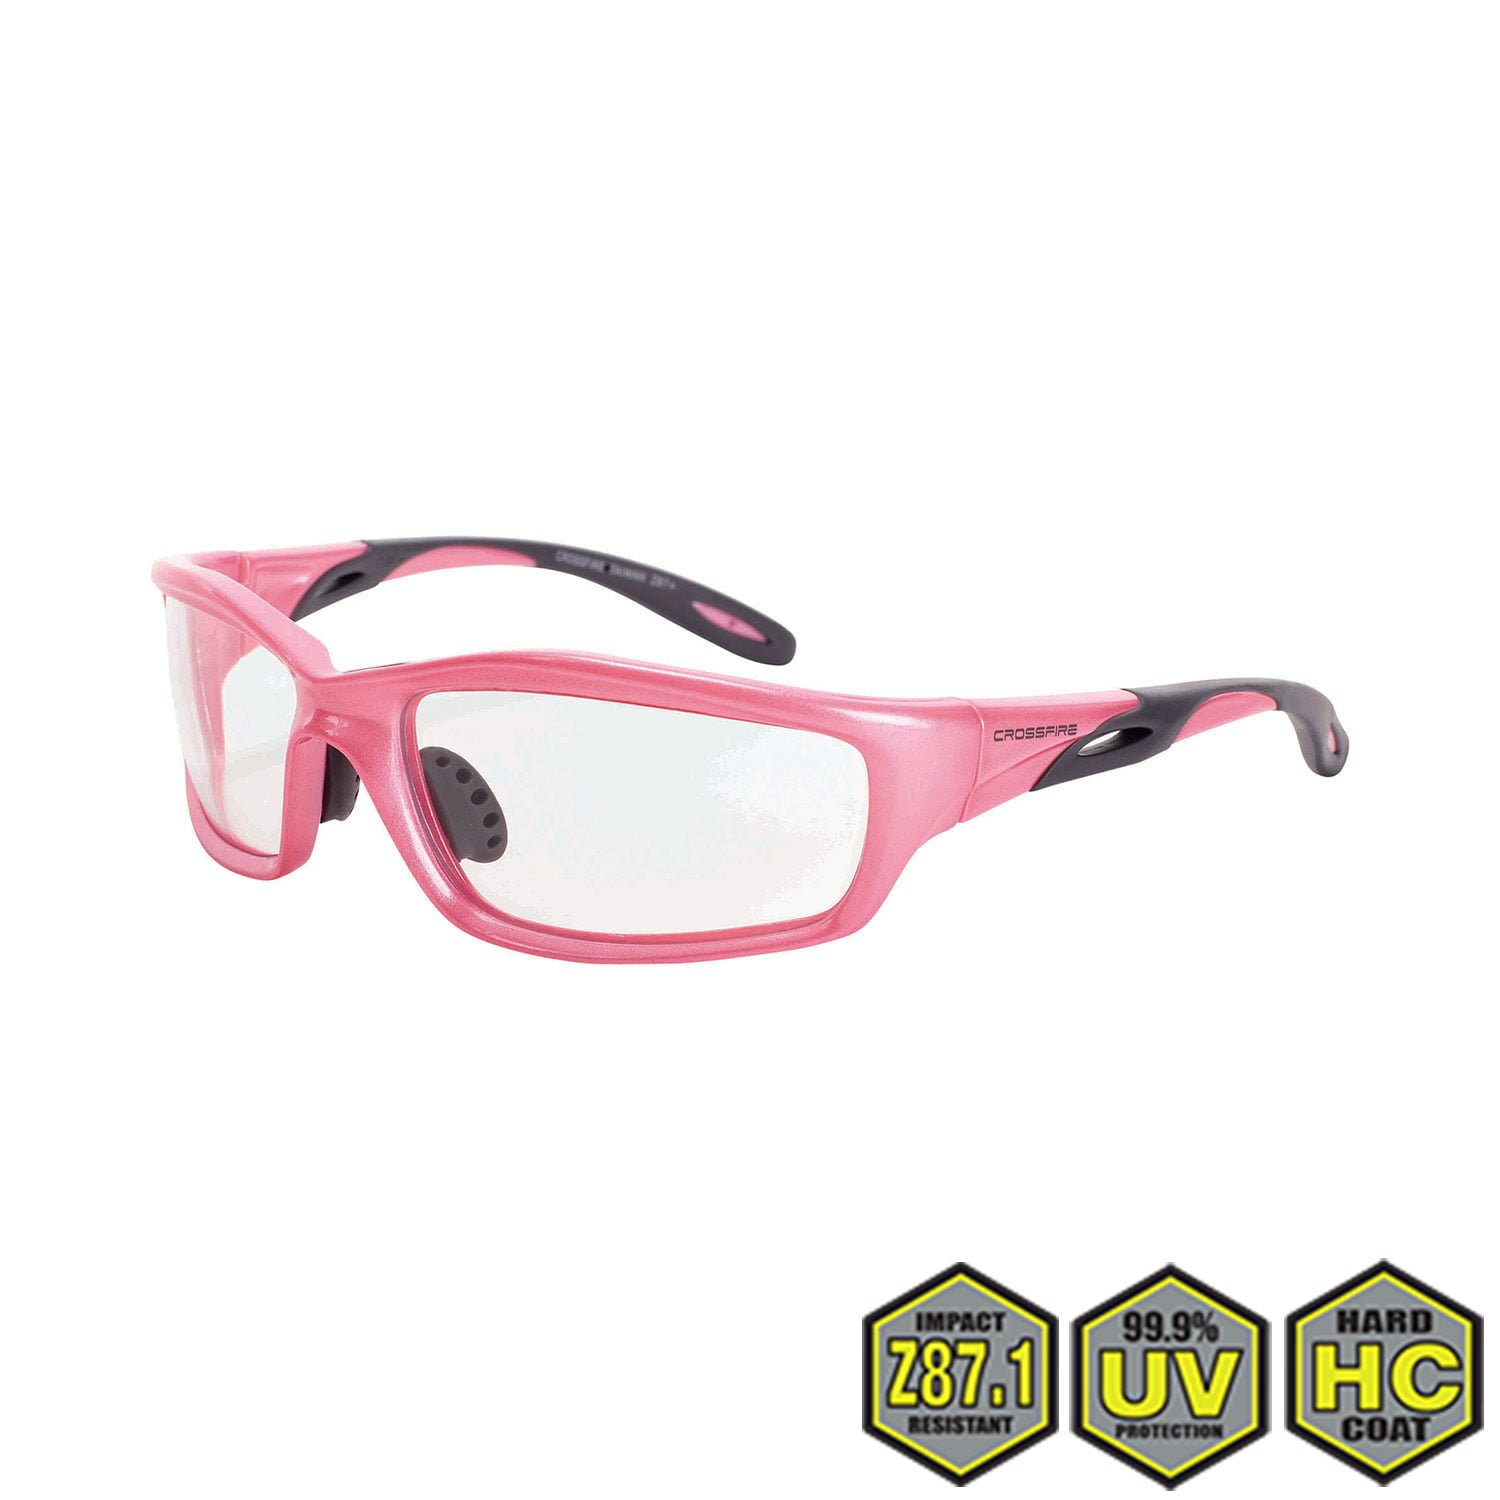 f60c1bb2f24 Radians Crossfire Infinity Pink Safety Glasses